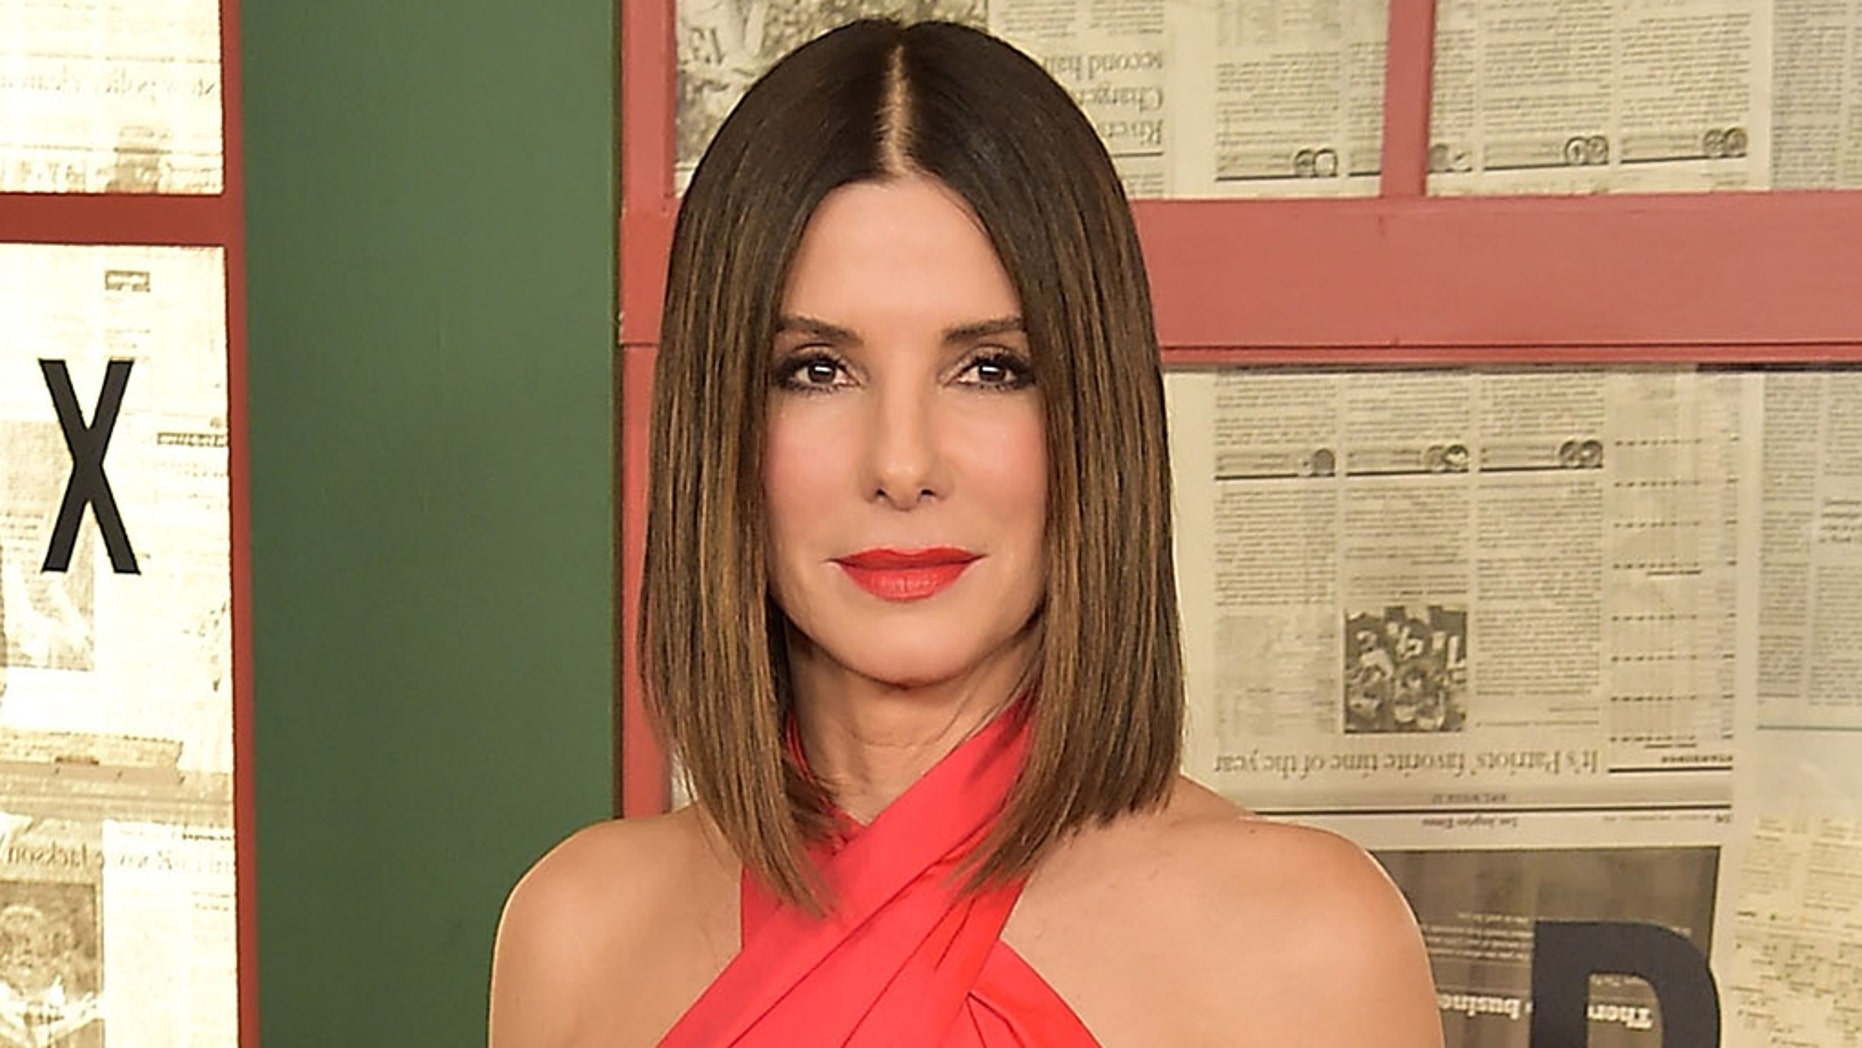 Sandra Bullock opens up about losing her father, 2 dogs and